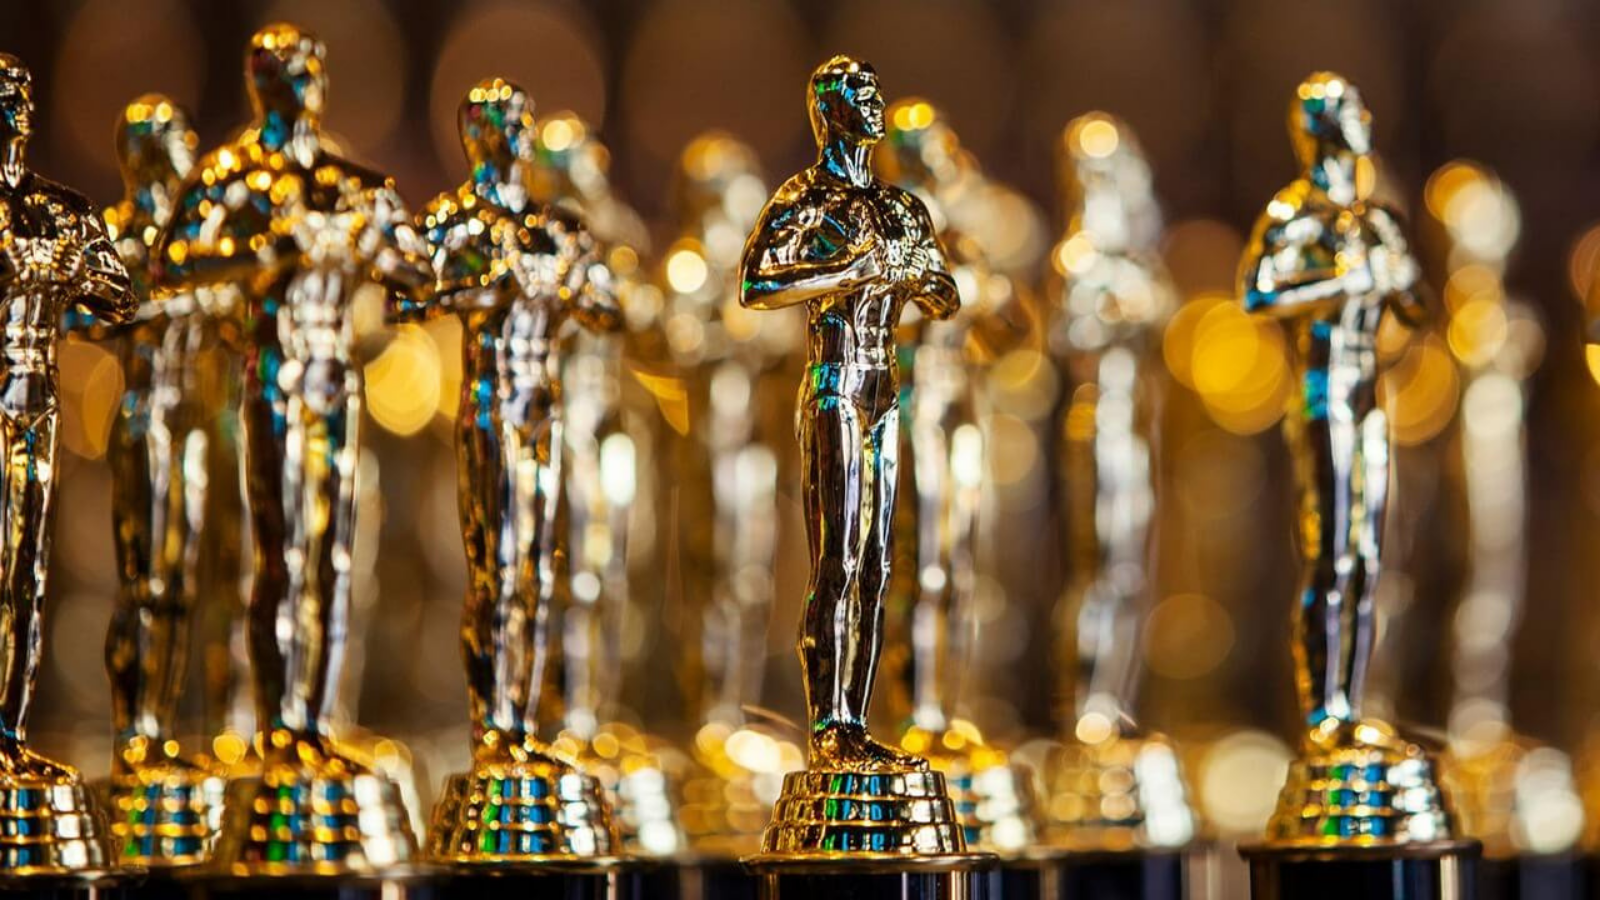 Samuel L Jackson, Danny Glover, others to honorary Oscars